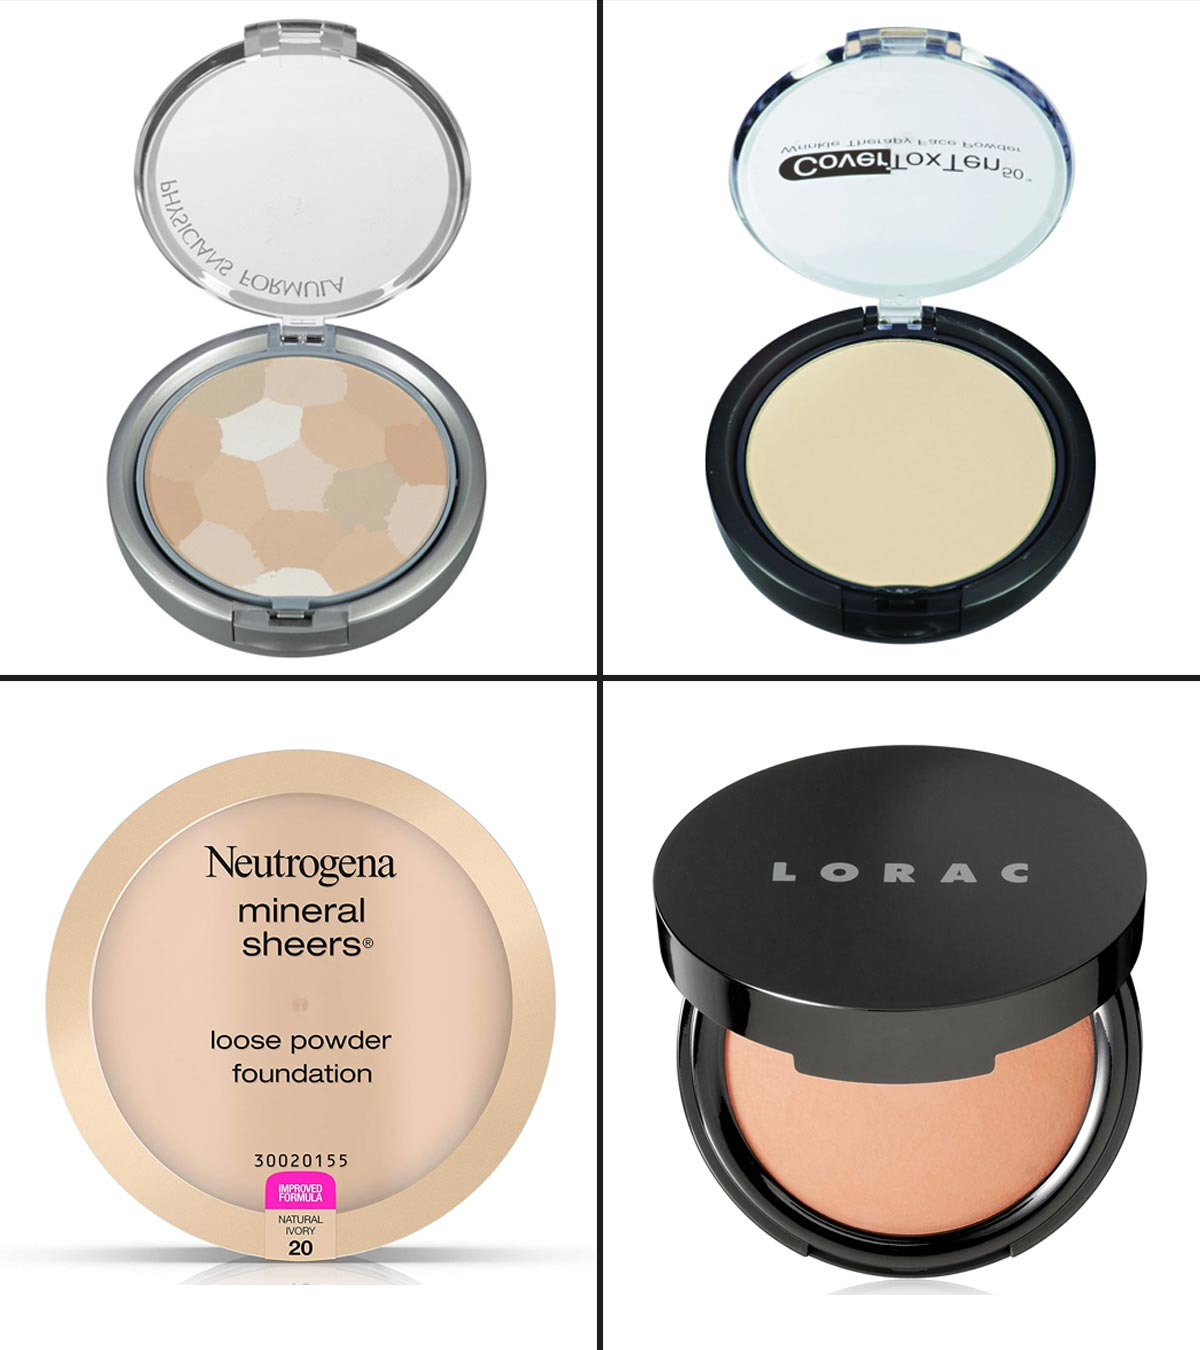 13 Best Powder Foundation For Dry Skin In 2021